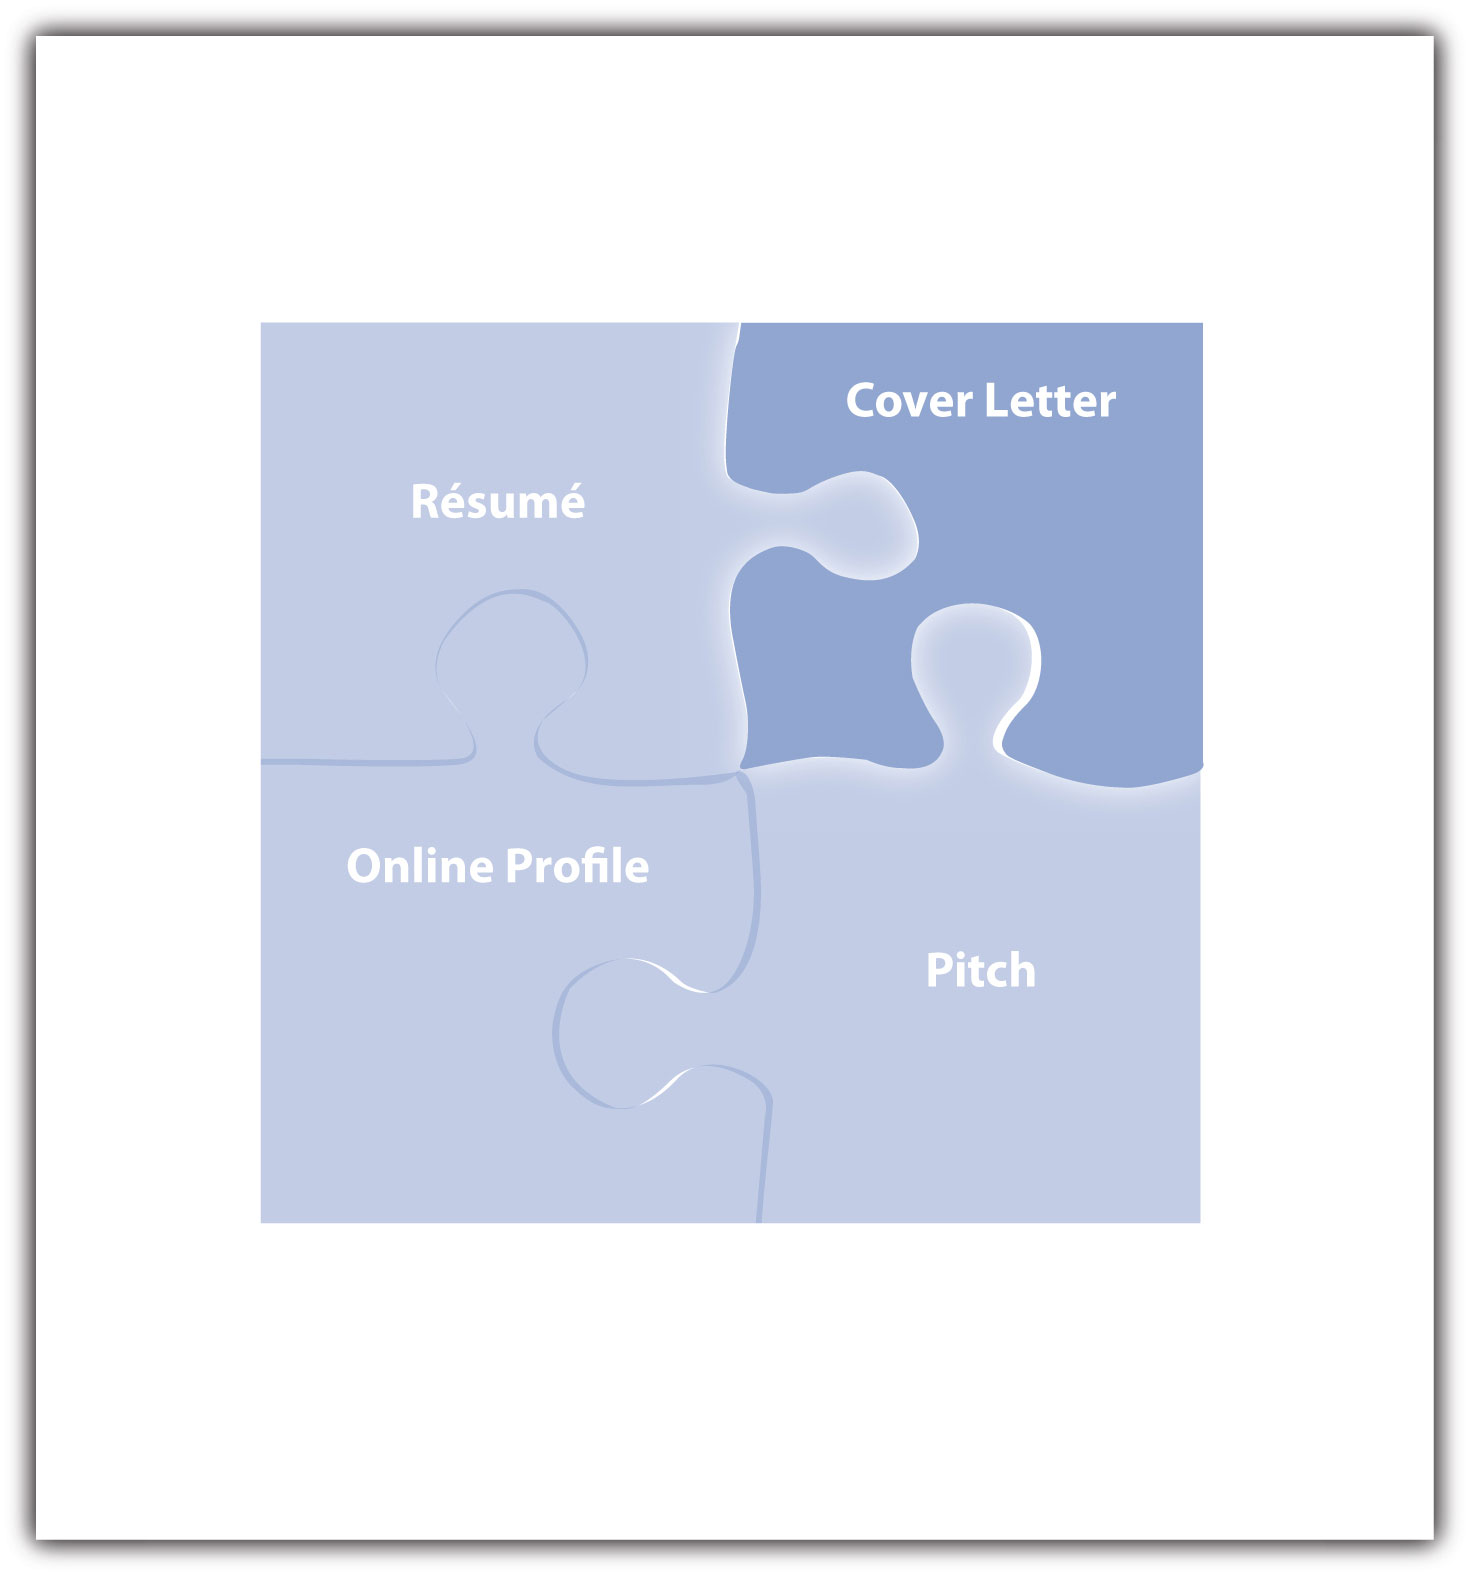 Online Graphic Designer Cover Letter The Cover Letter